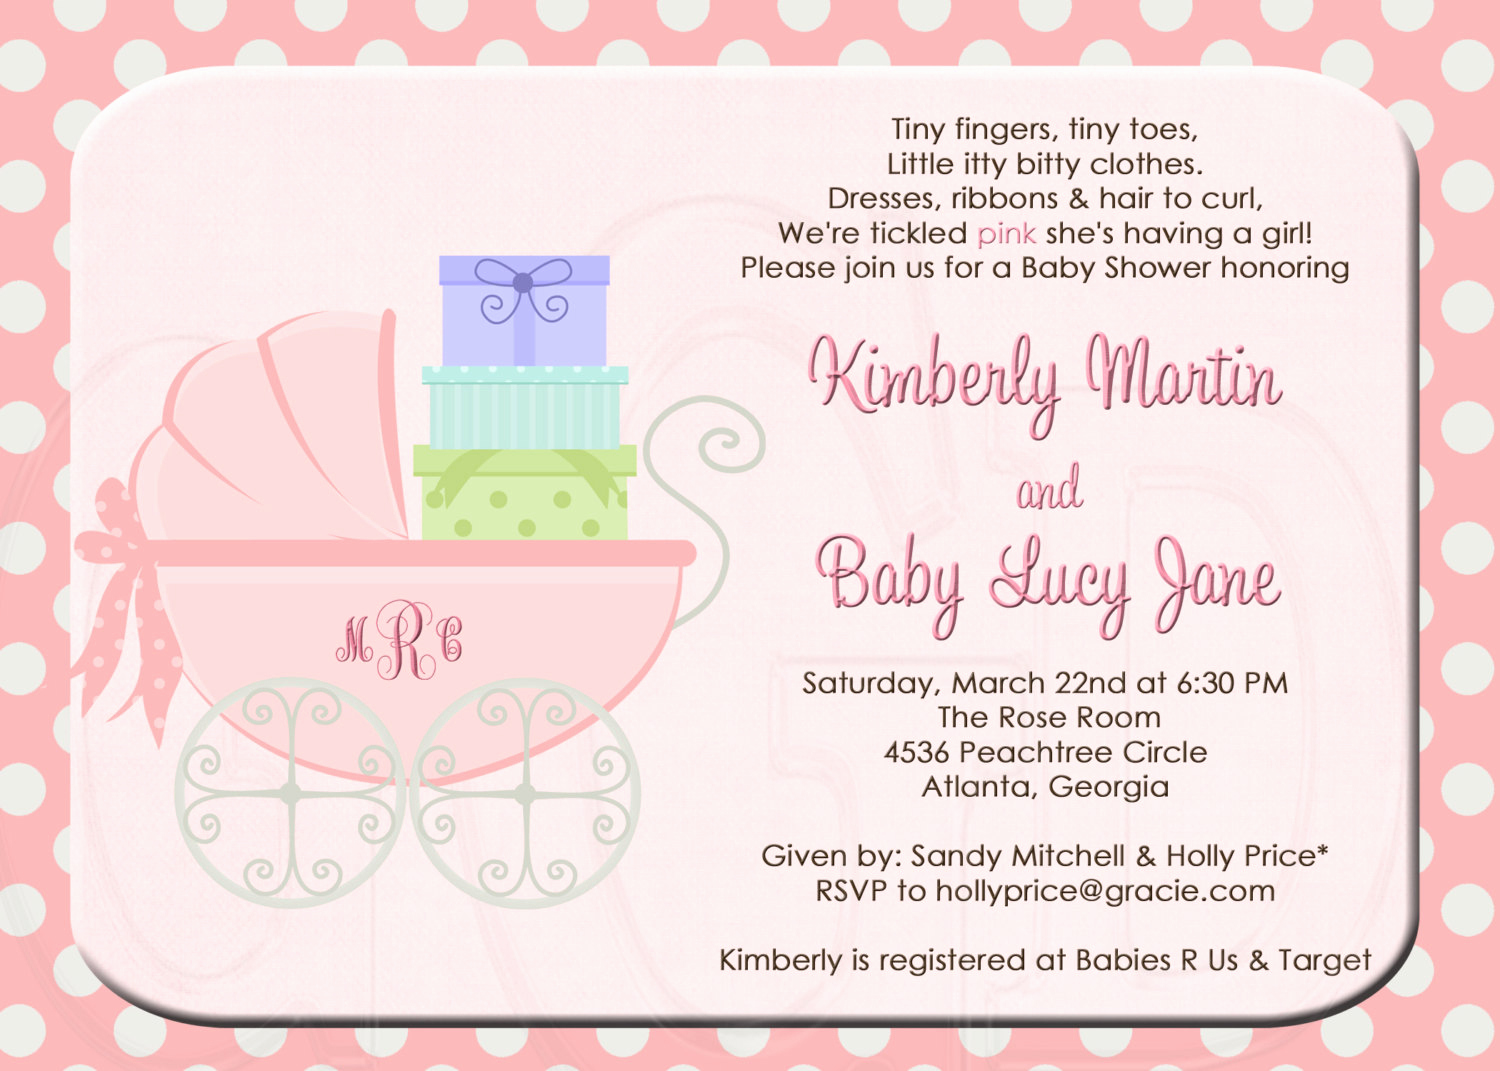 Baby Shower Invitation Message Beautiful Cute Sayings for Baby Shower Cards • Baby Showers Ideas